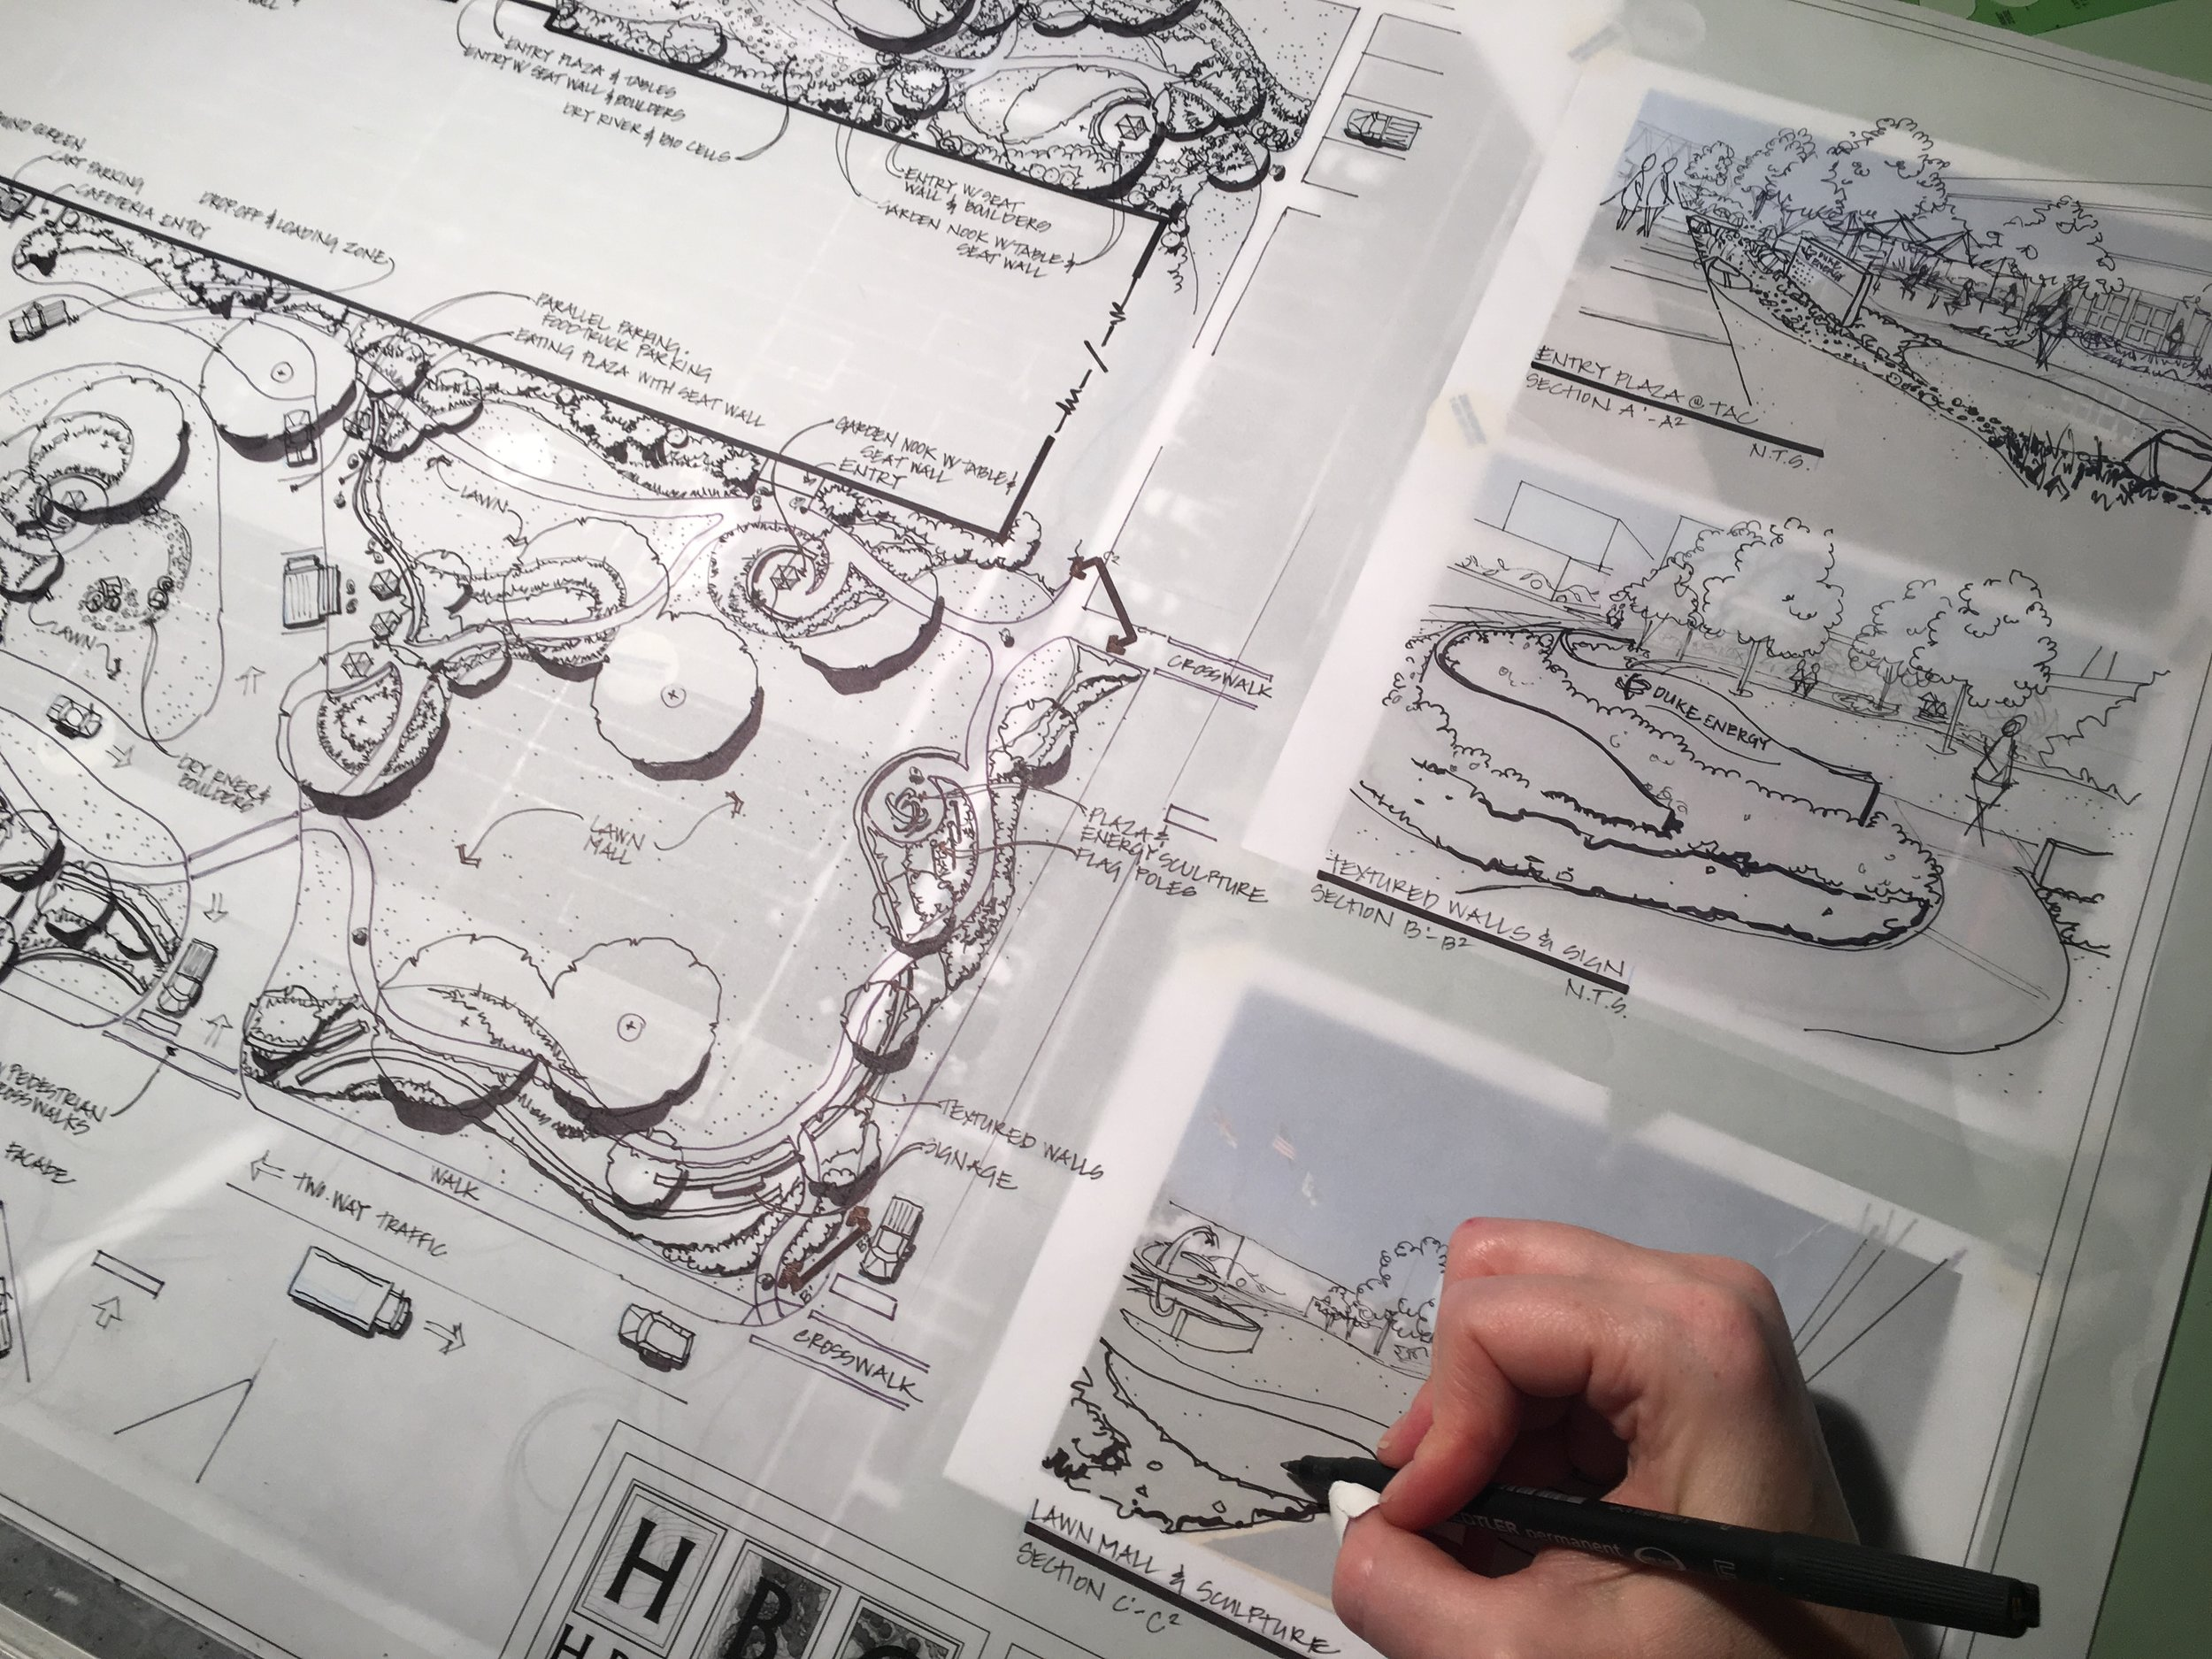 Drawing by hand stimulates the imagination and allows us to speculate about ideas, a good sign that we're truly alive ~ Micheal Graves   At HBC we still produce hand drawn conceptual designs and renderings for our clients to use for marketing, presentations, framing, and meetings.